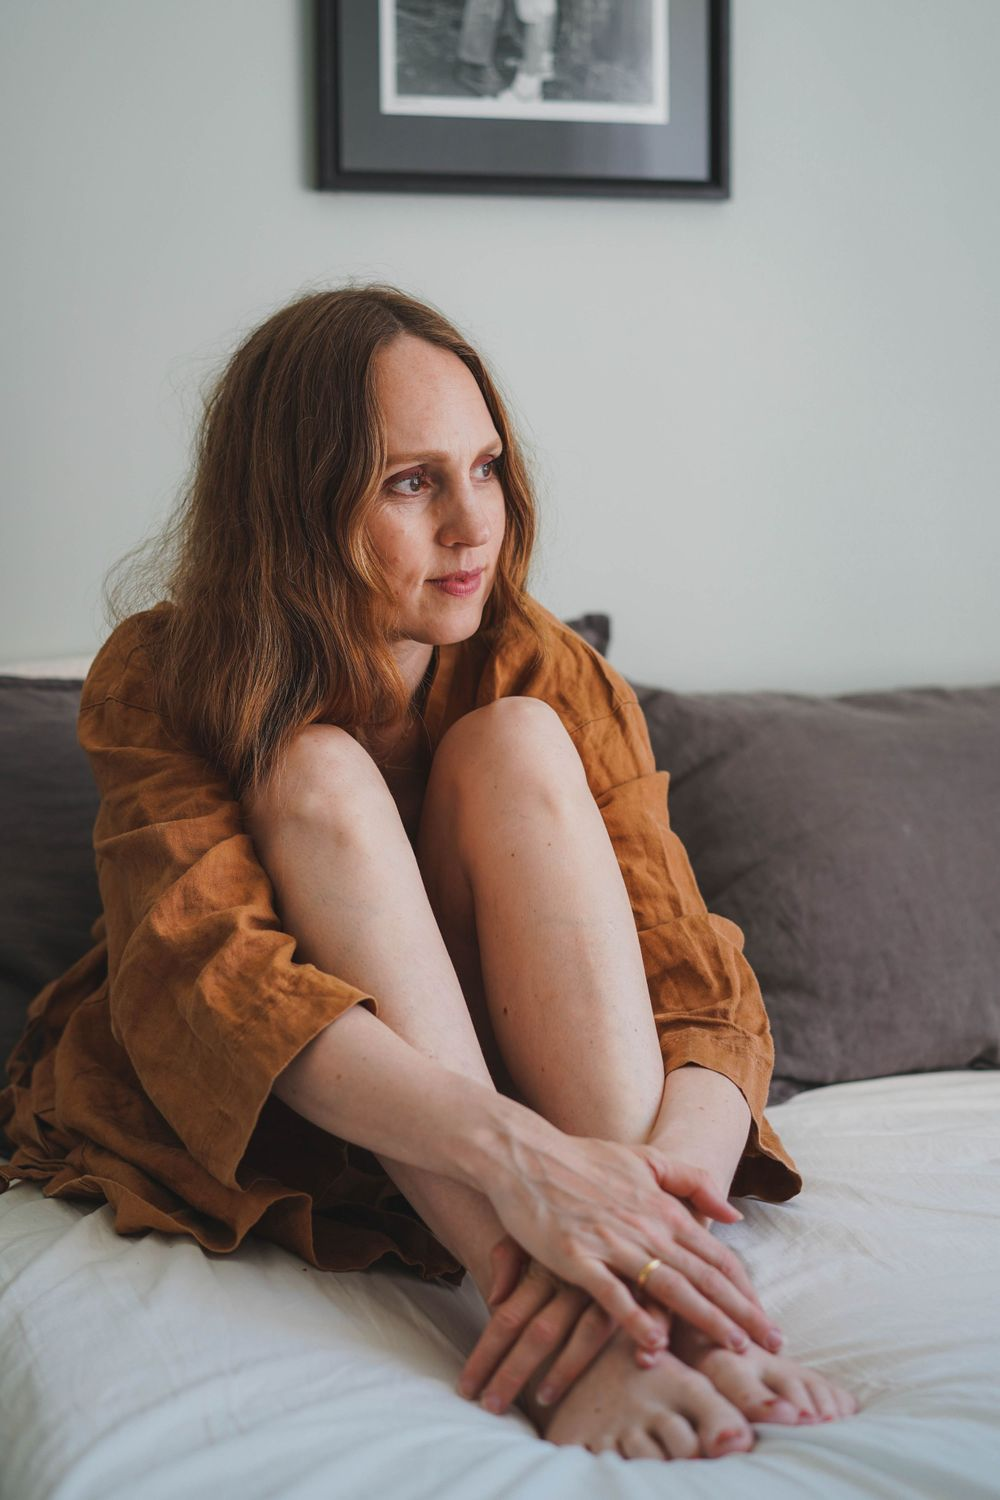 woman in a brown bathrobe sitting on the bed